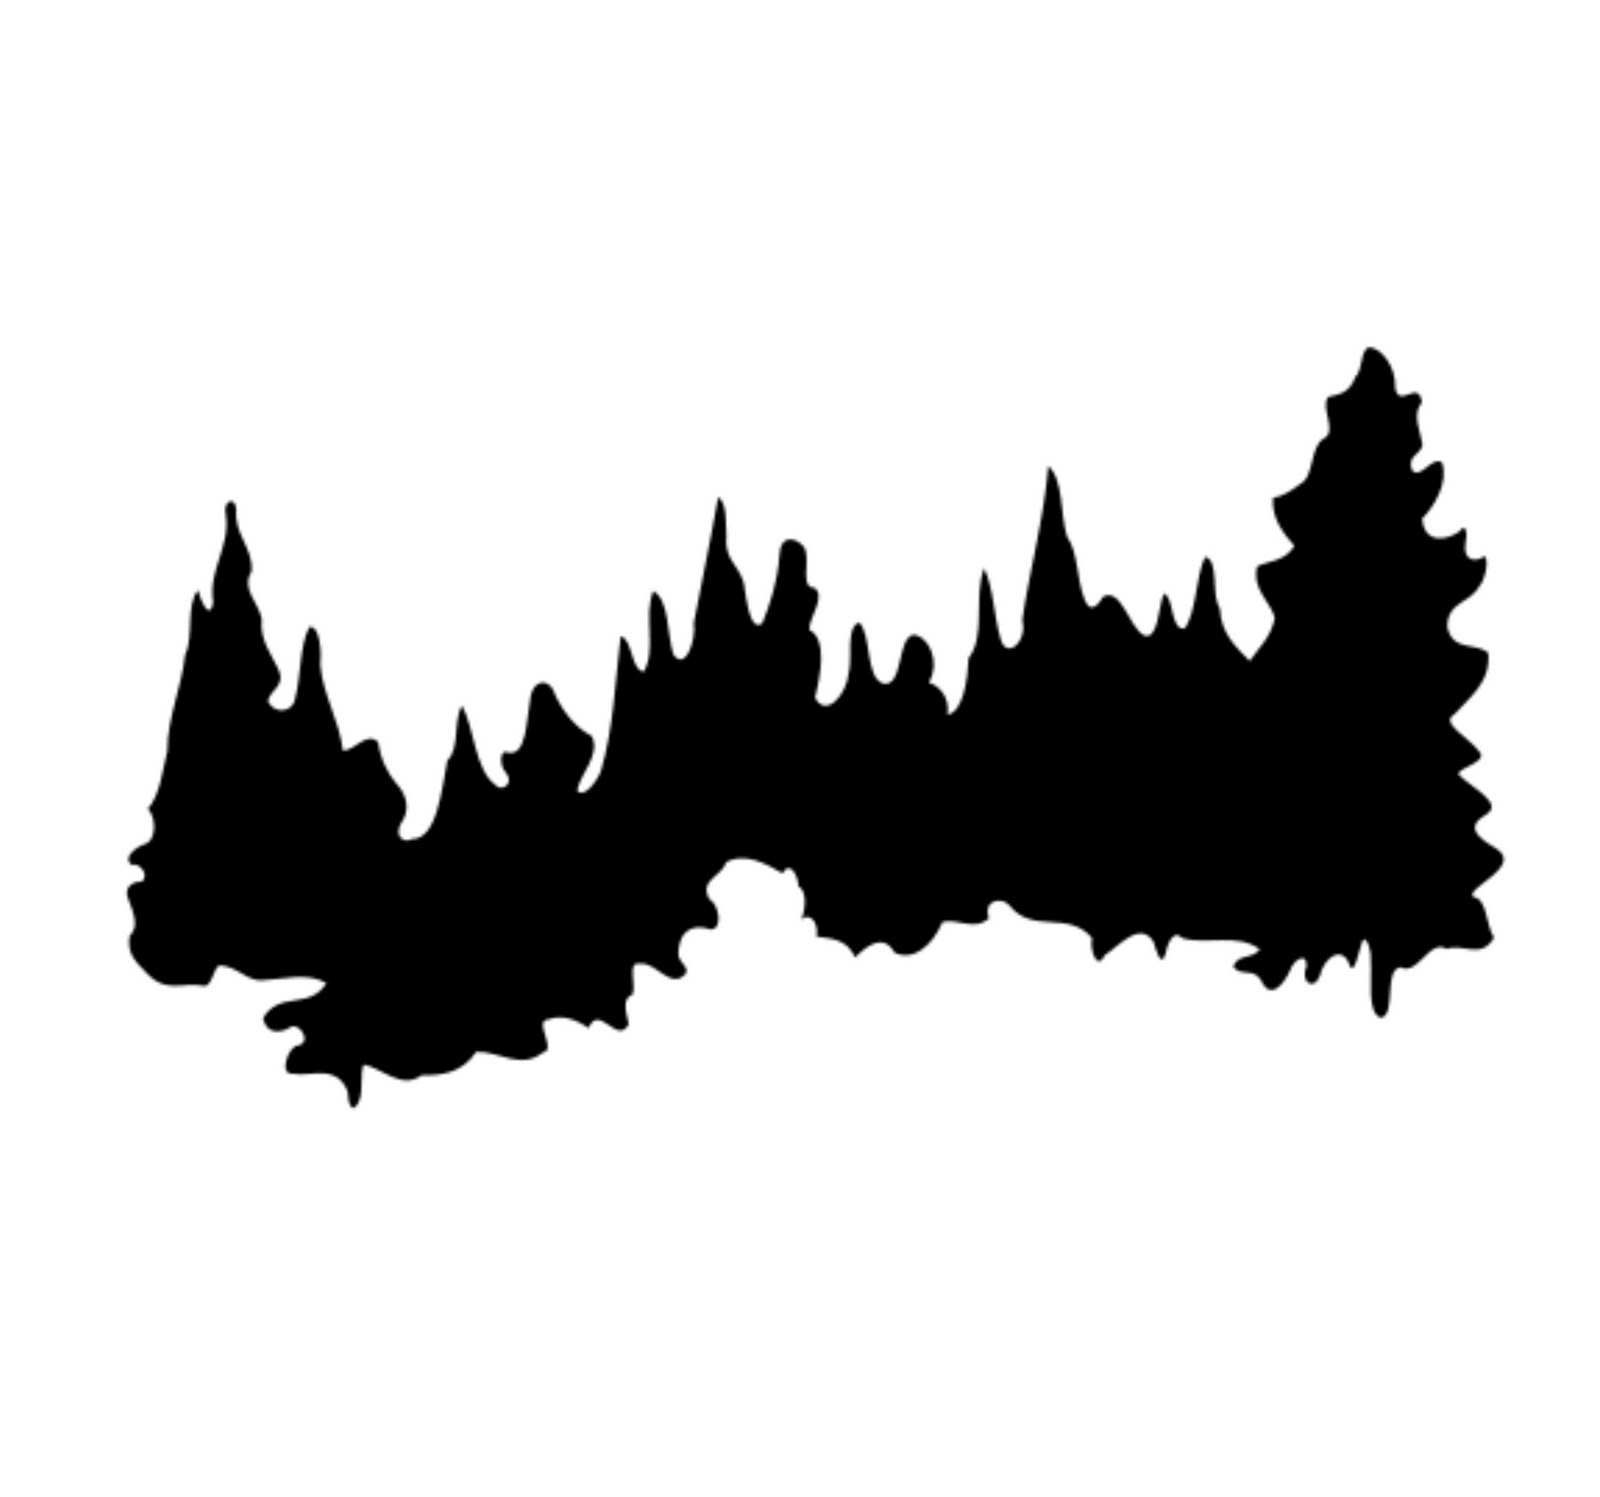 Tree Vector Silhouette at GetDrawings.com.